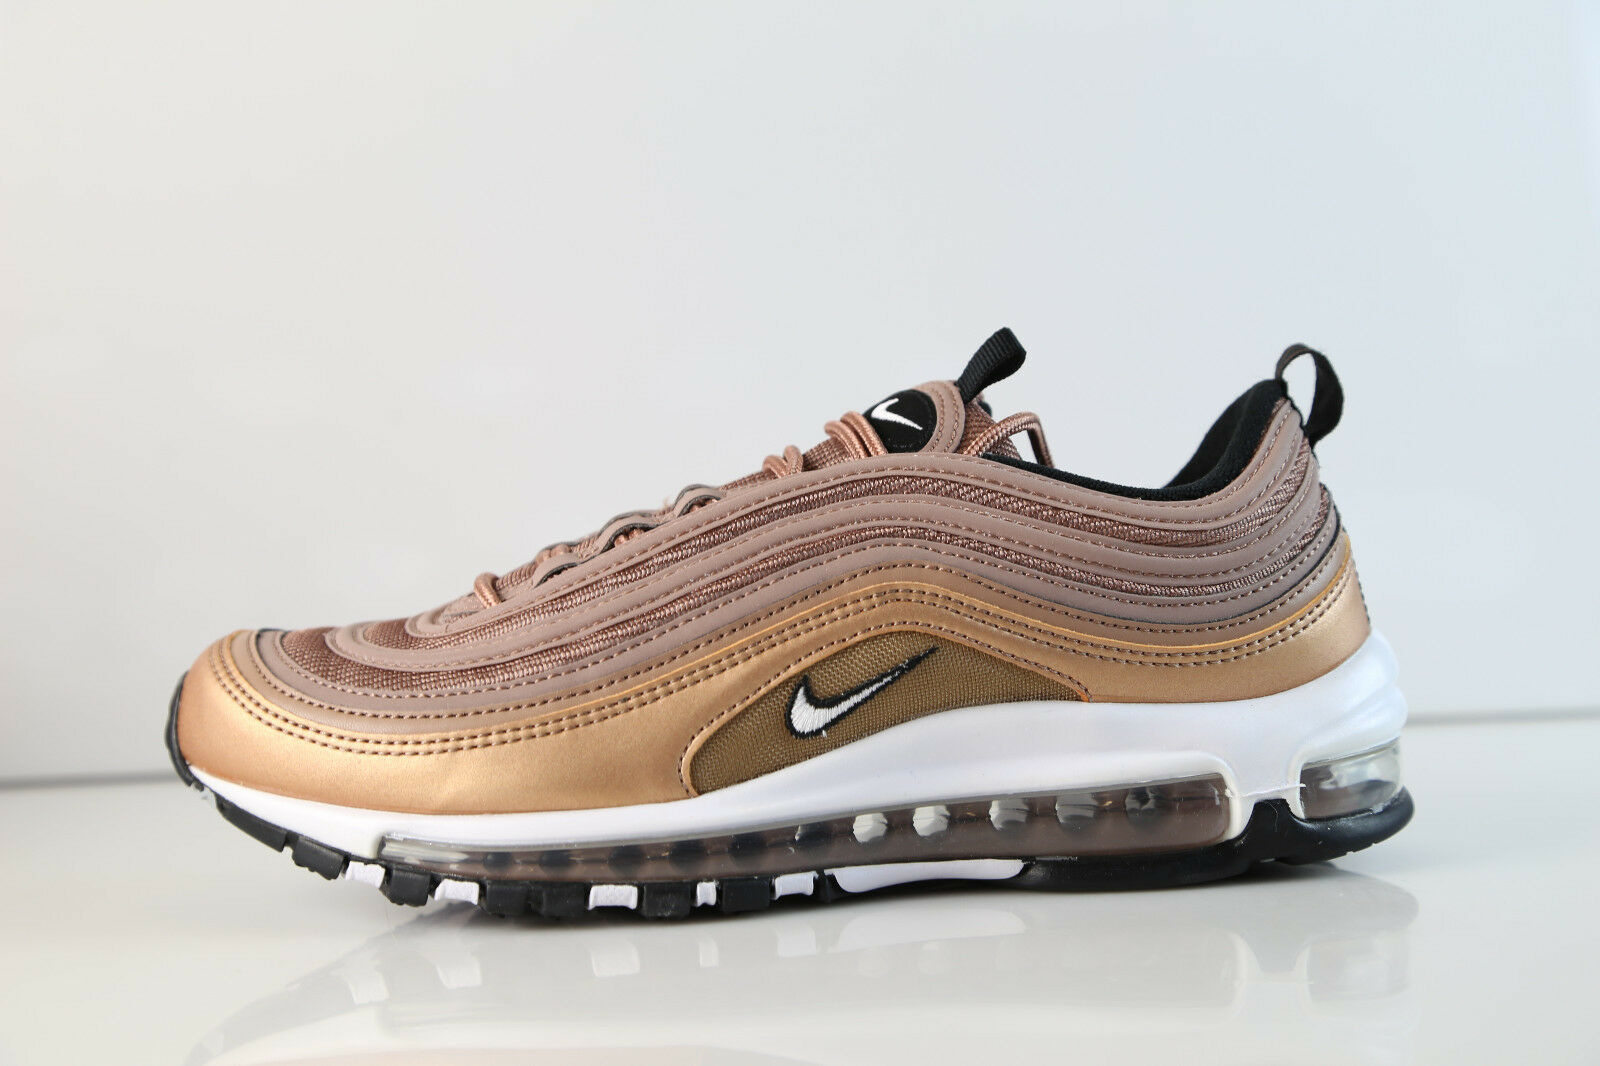 Nike Air Max 97 Desert Dust Rose Gold 921826-200 8-10.5 1